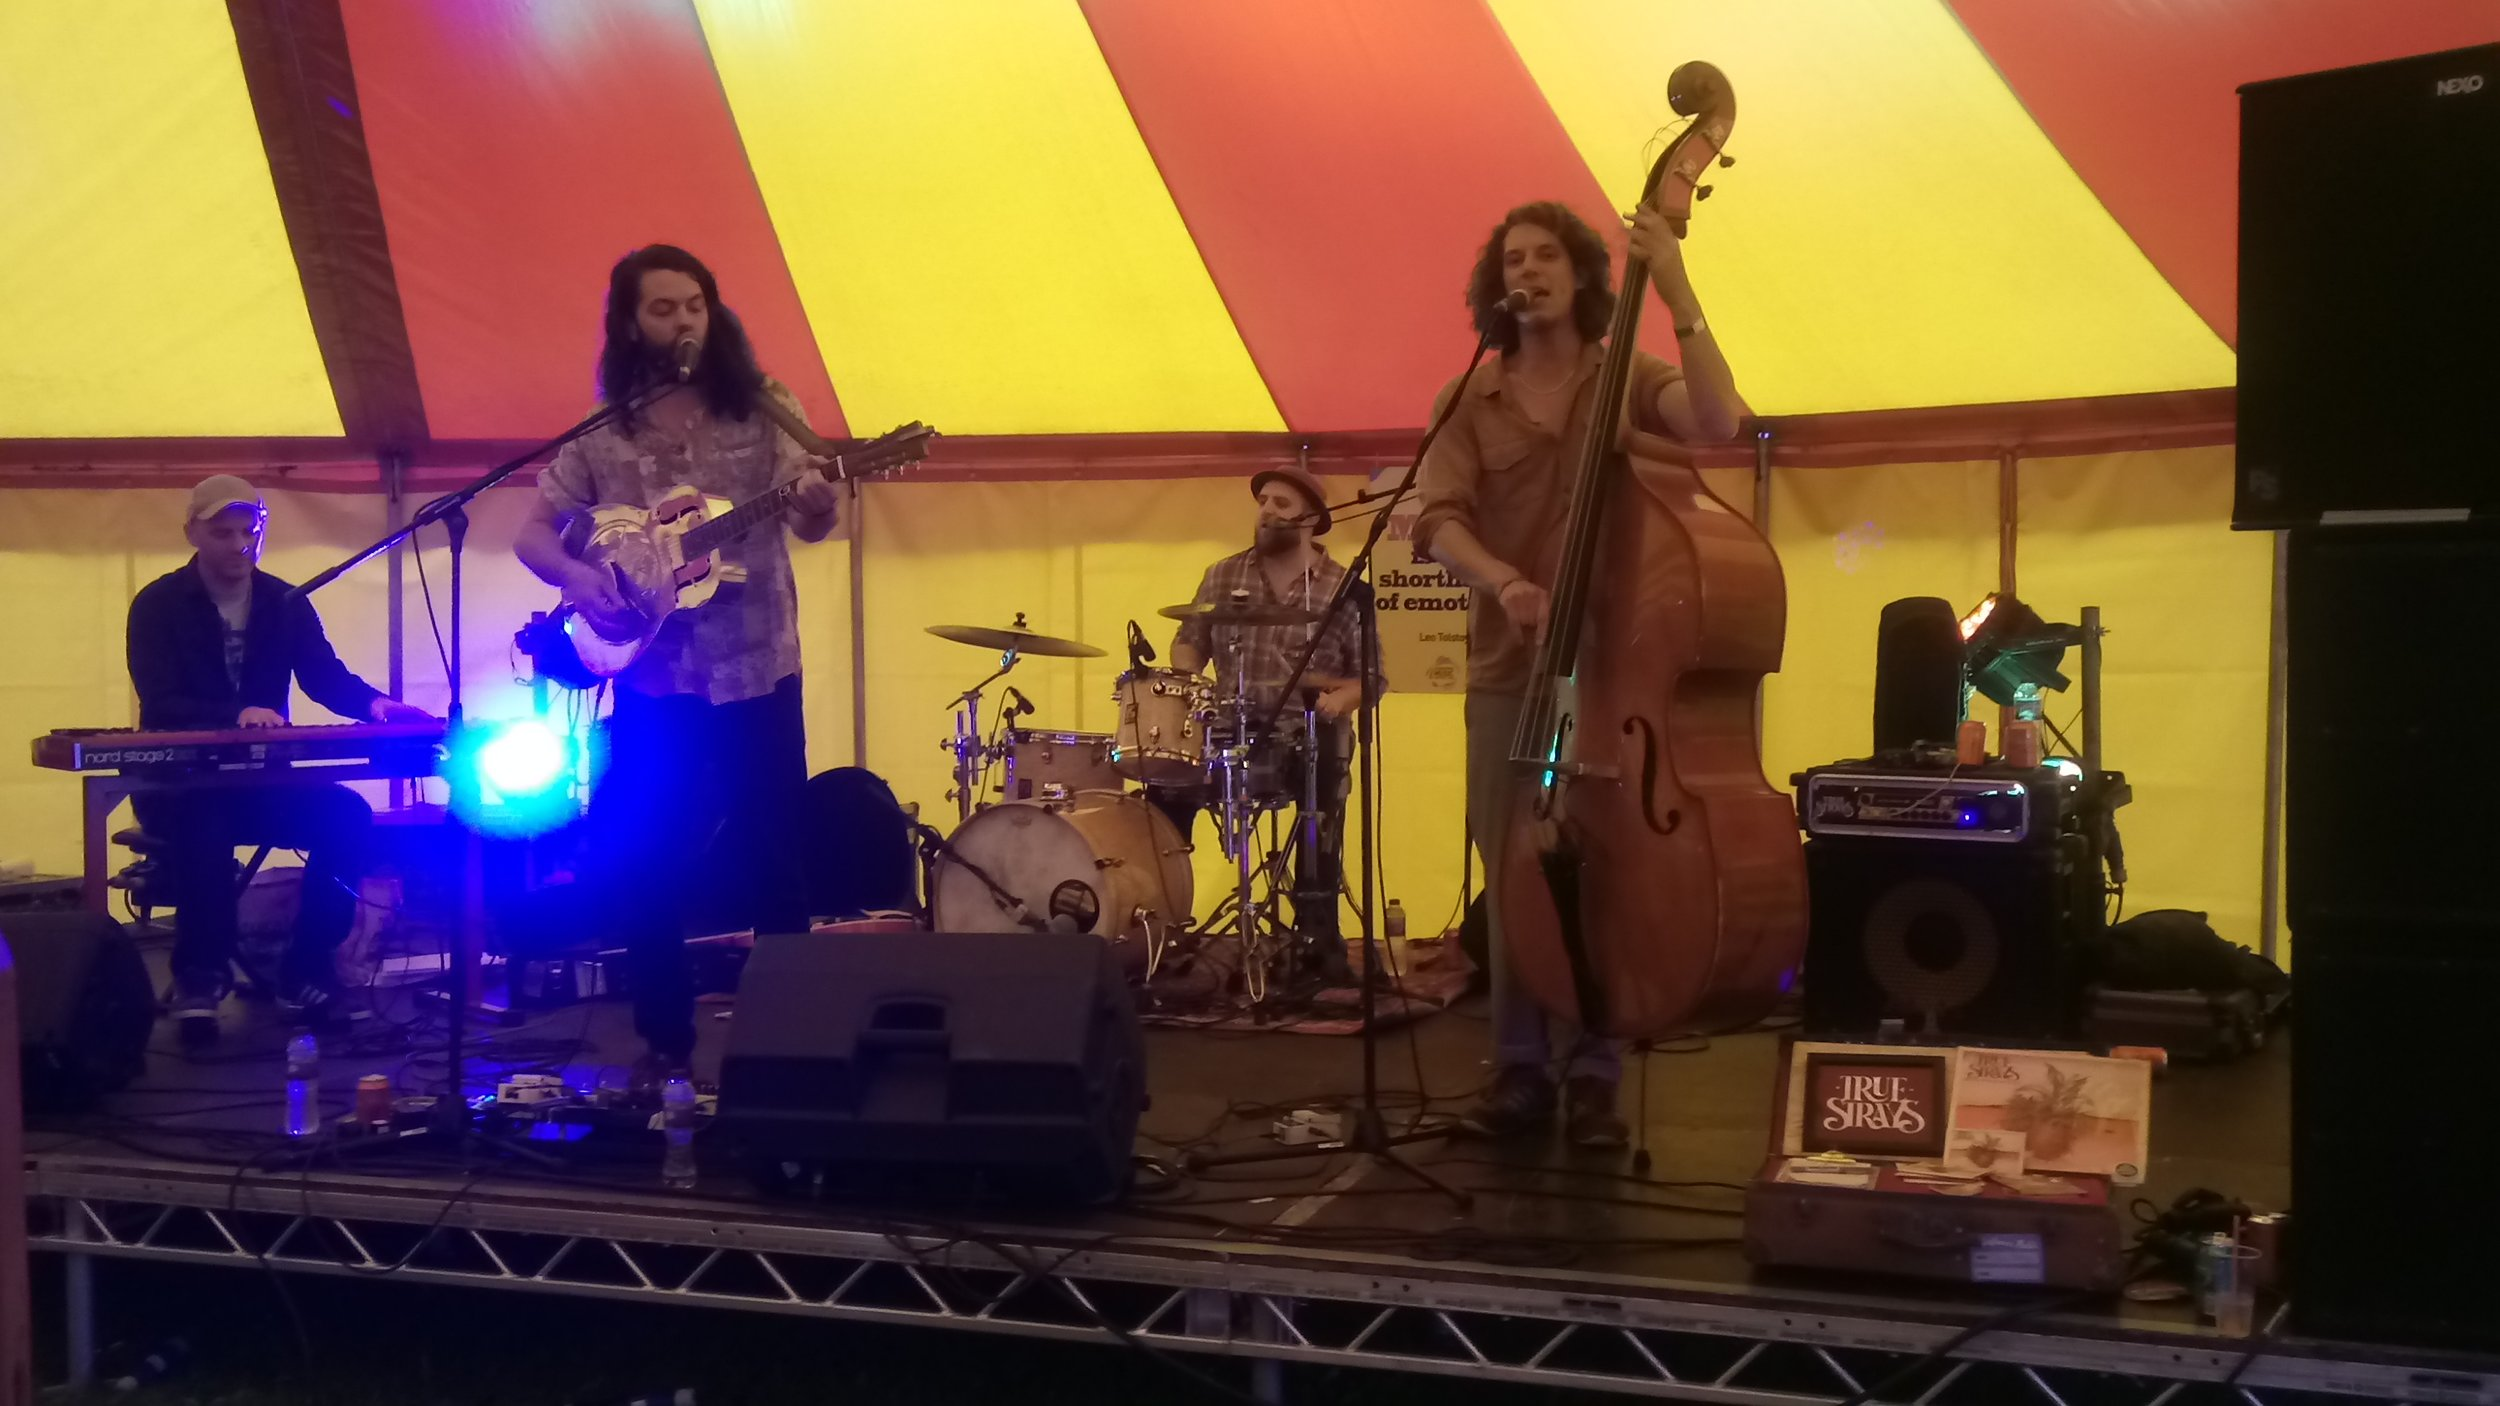 True Strays kicking up a storm at the Arlesford Music Festival